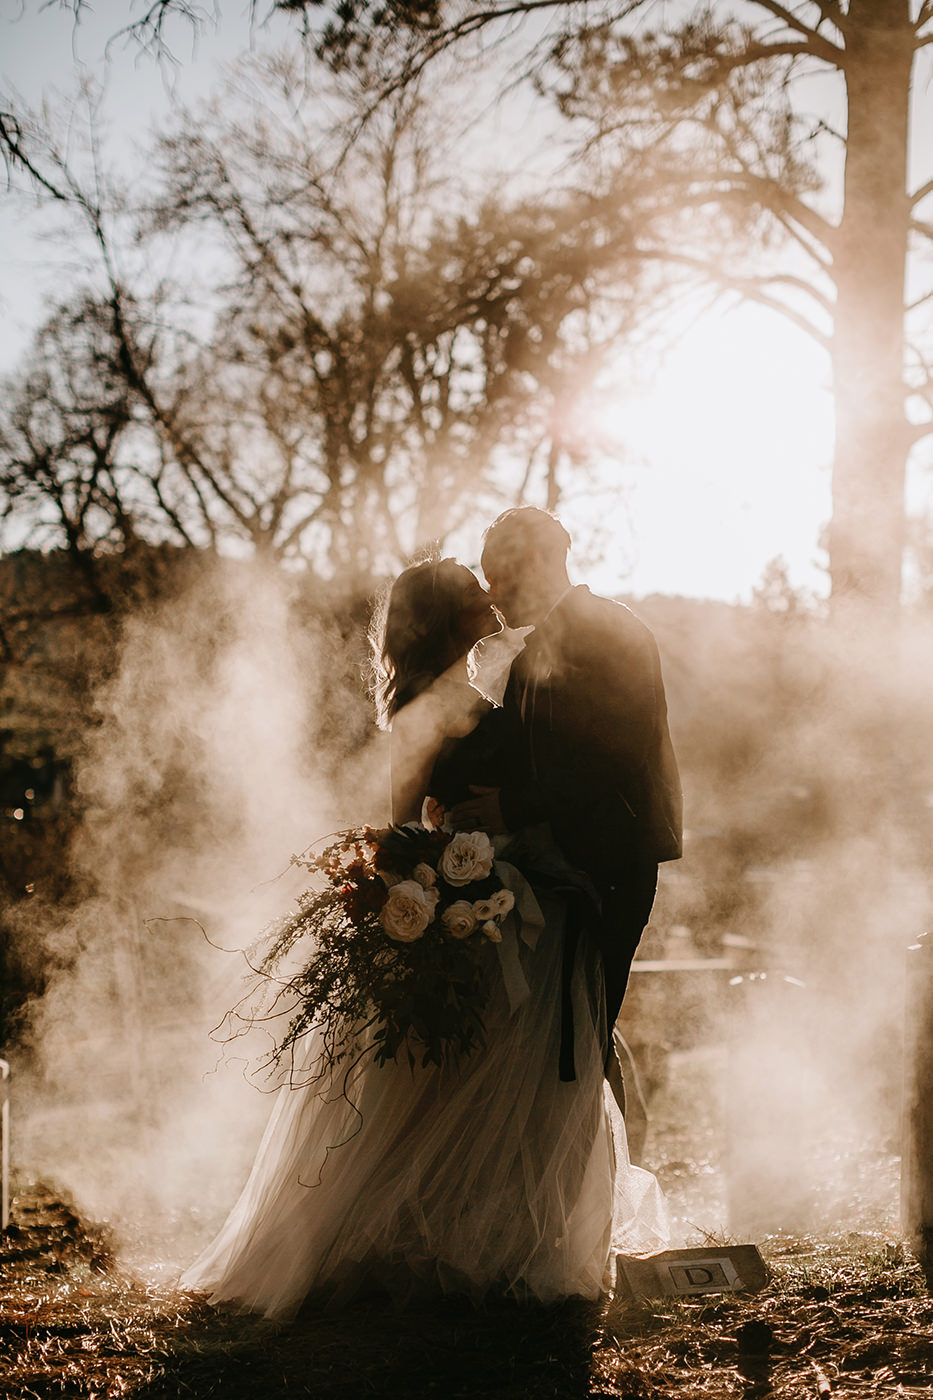 Liz Osban Photography Wedding Elopement Eloped engaged engagement couples session photographer deadwood south dakota wyoming beautiful vintage moody colorado mountains vintage best vintage lease martin mason hotel 71.jpg